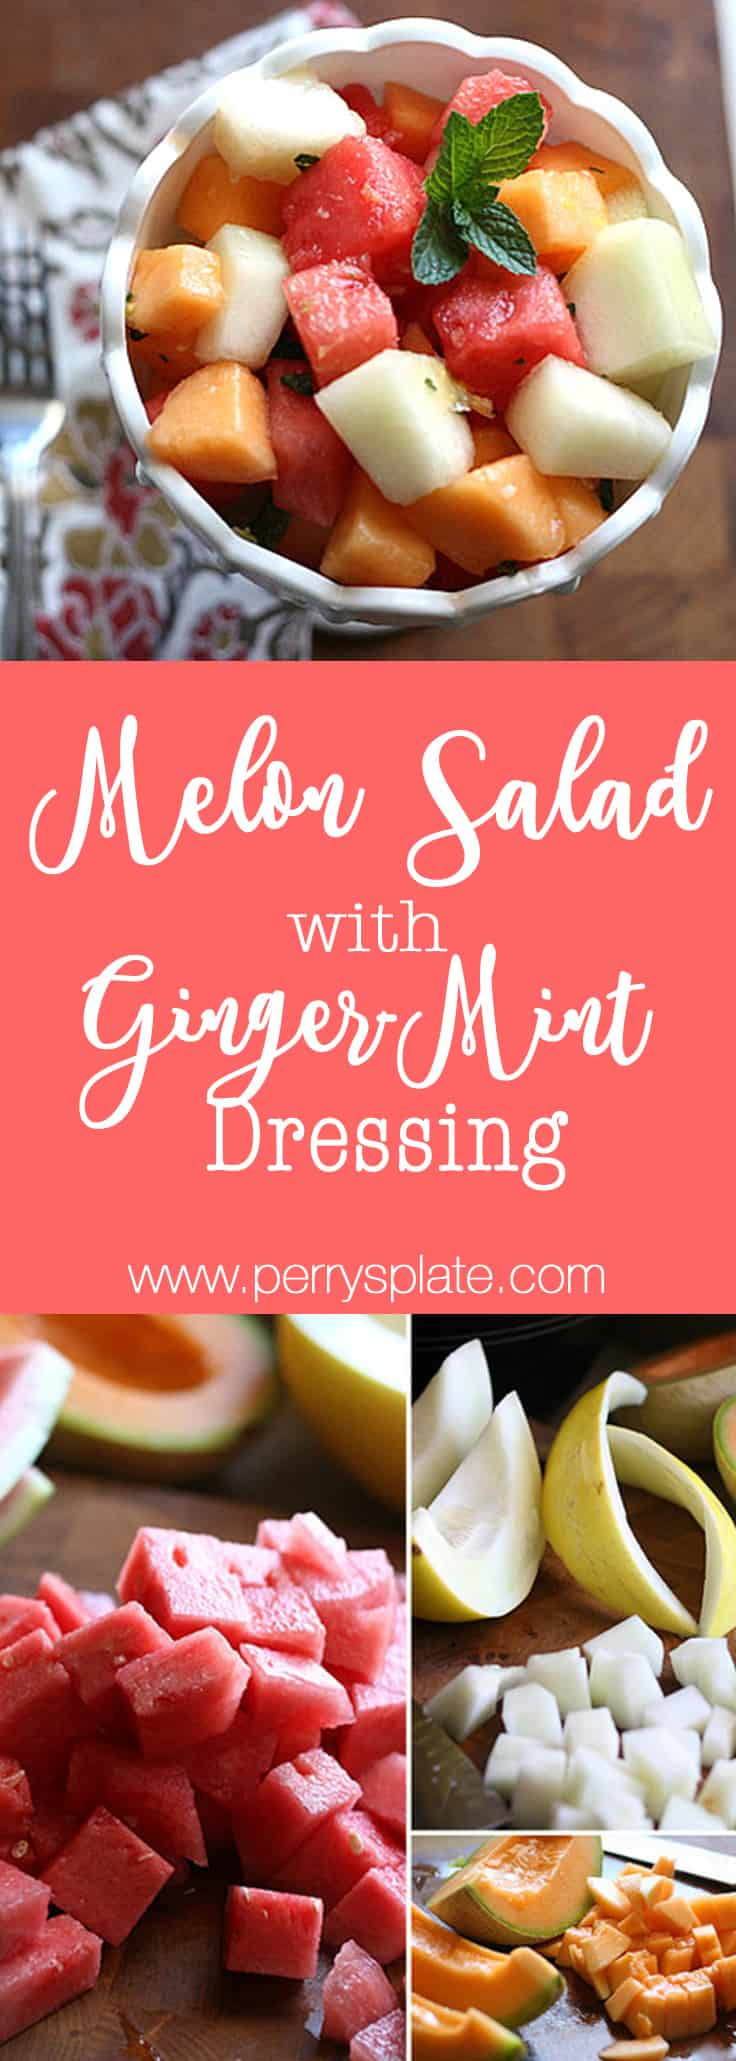 Melon Salad with Ginger-Mint Dressing | melon recipes | Paleo dessert recipes | summer recipes | salad recipes | dairy free recipes